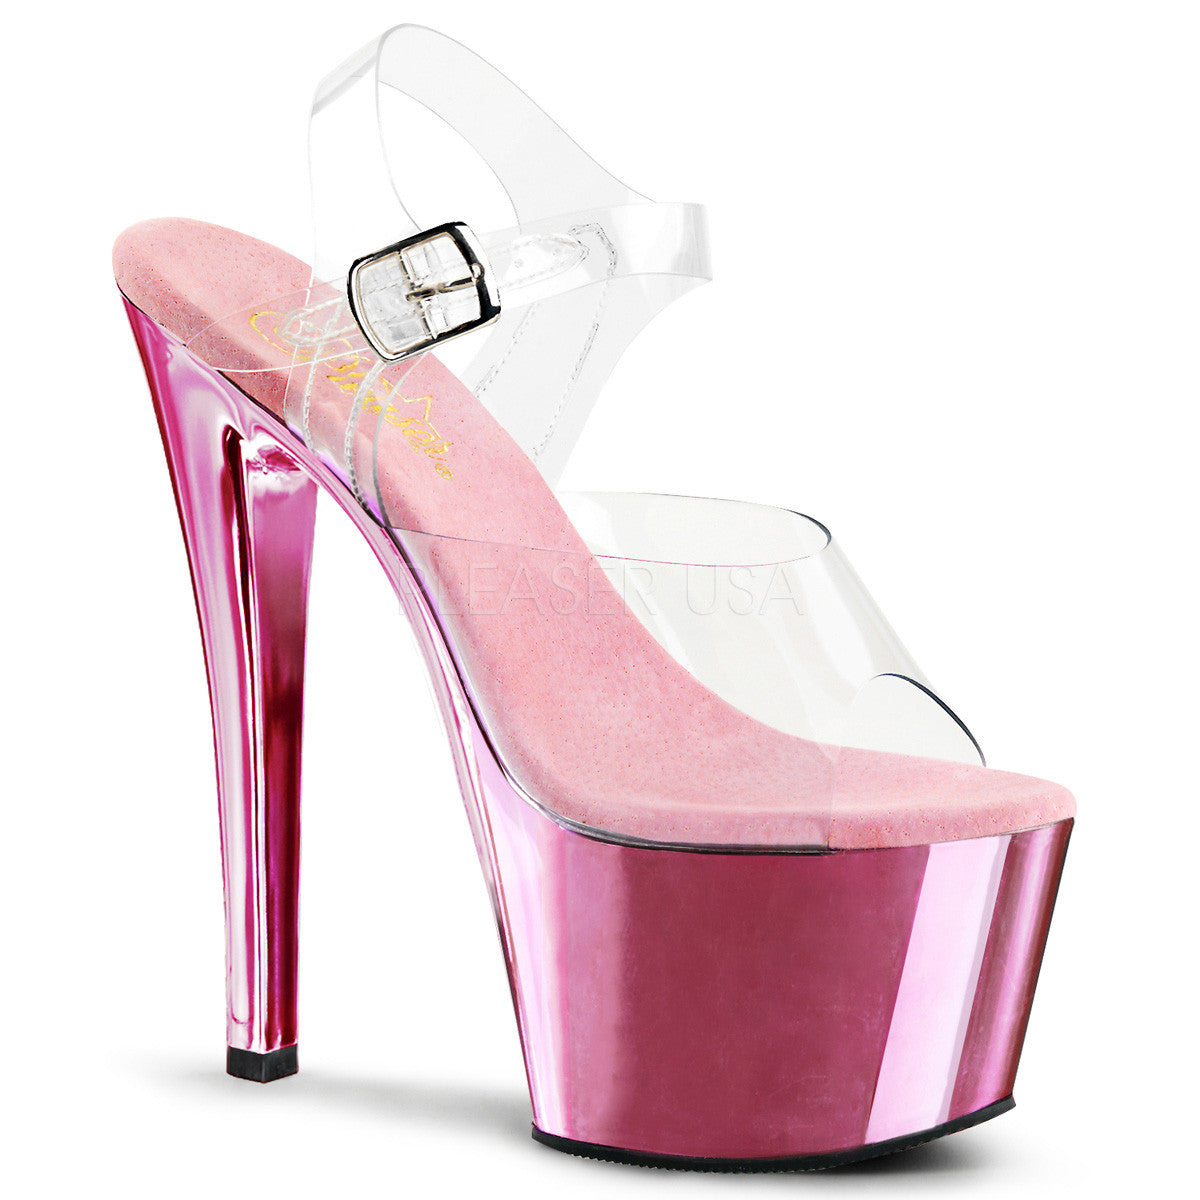 PLEASER SKY-308 Clear-Baby Pink Chrome Ankle Strap Sandals - Shoecup.com